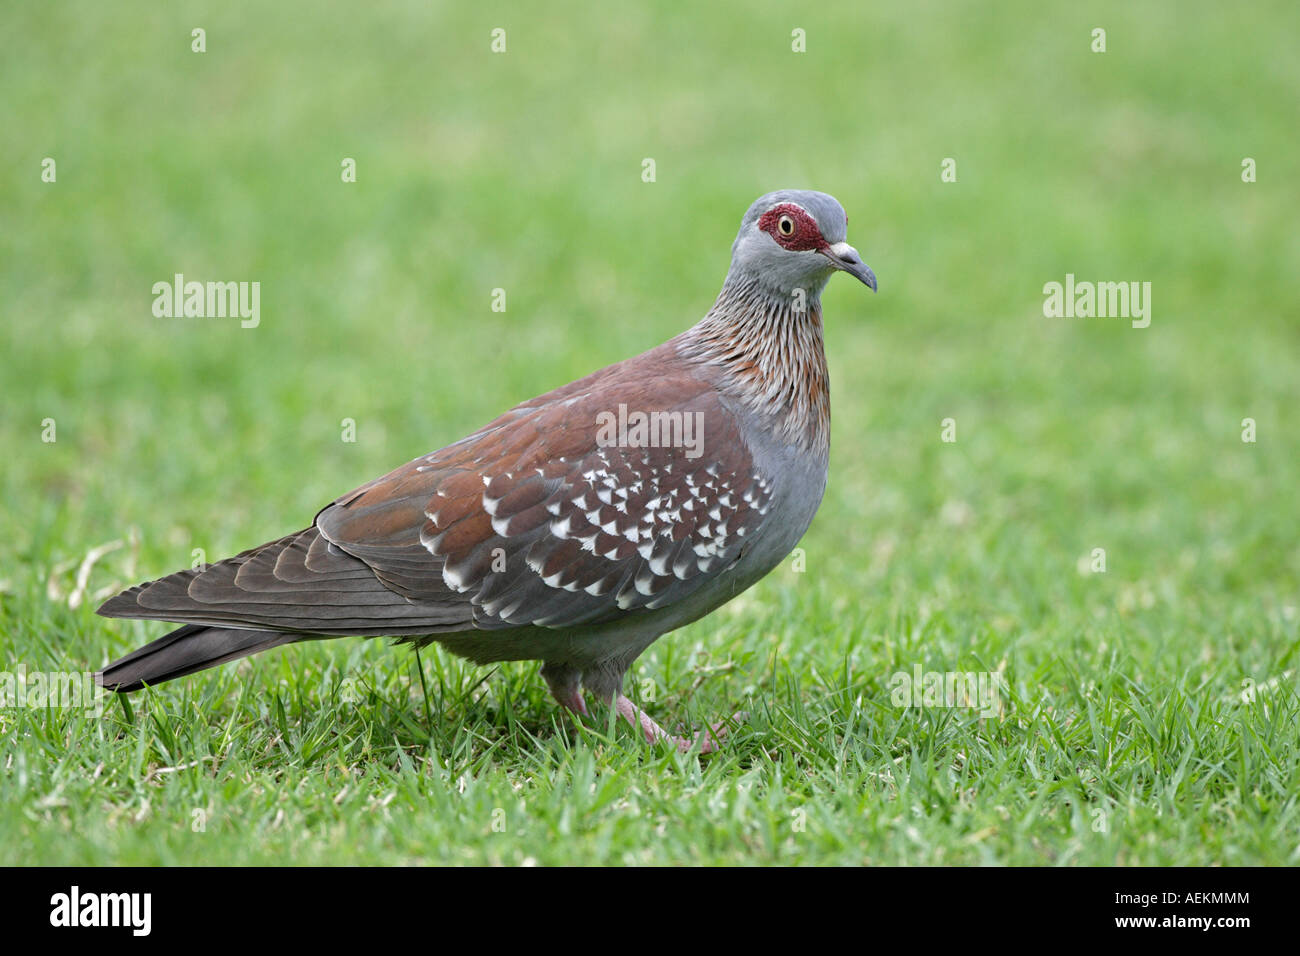 Speckled Pigeon - Stock Image